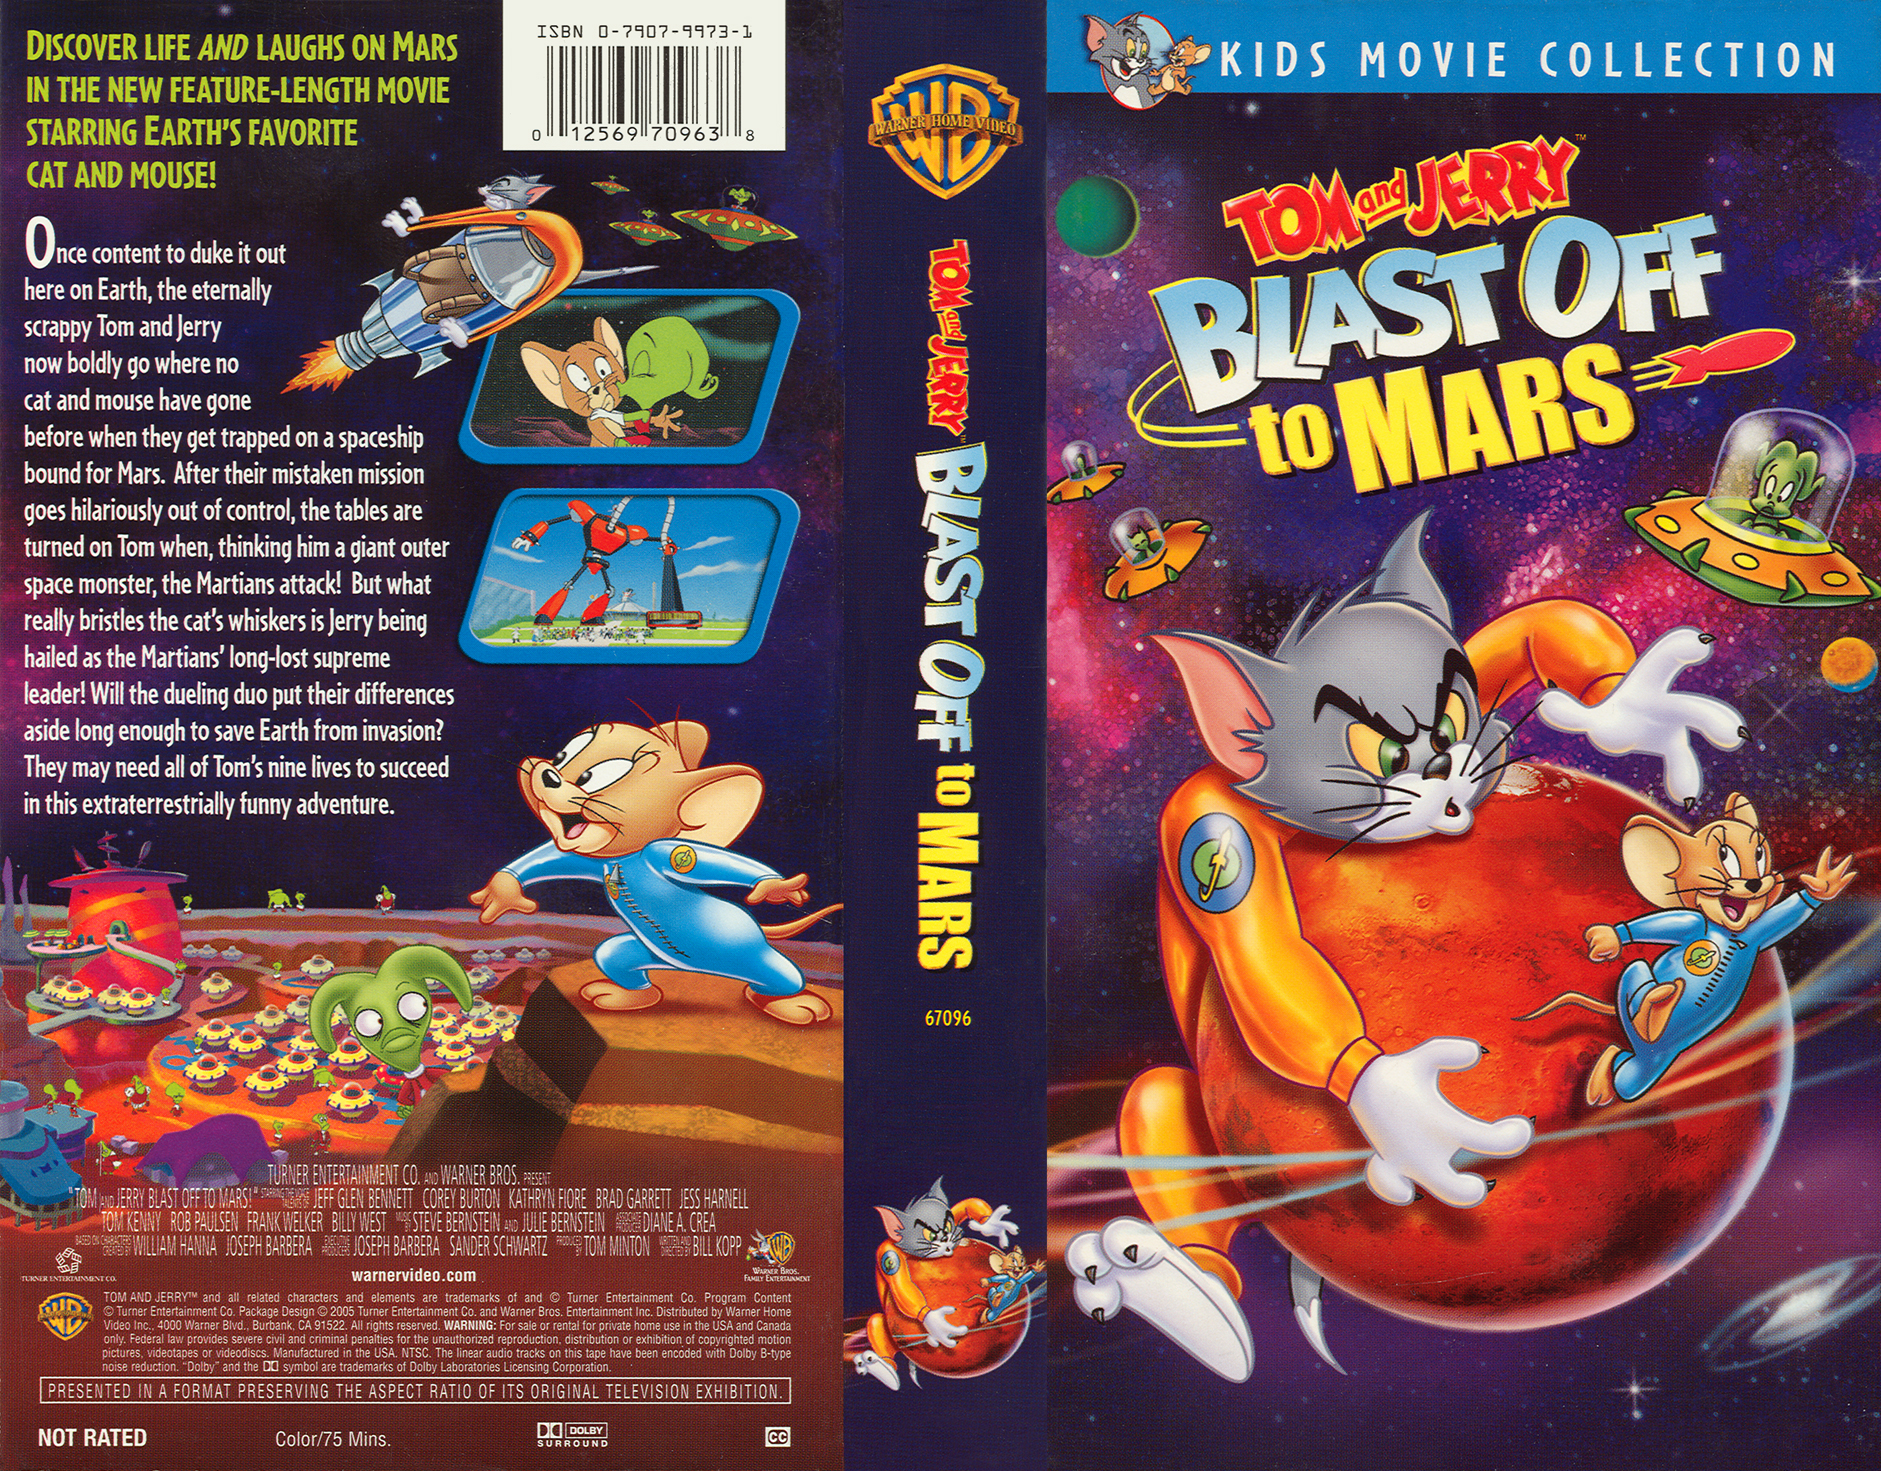 tom and jerry blast off to mars jerry - photo #26